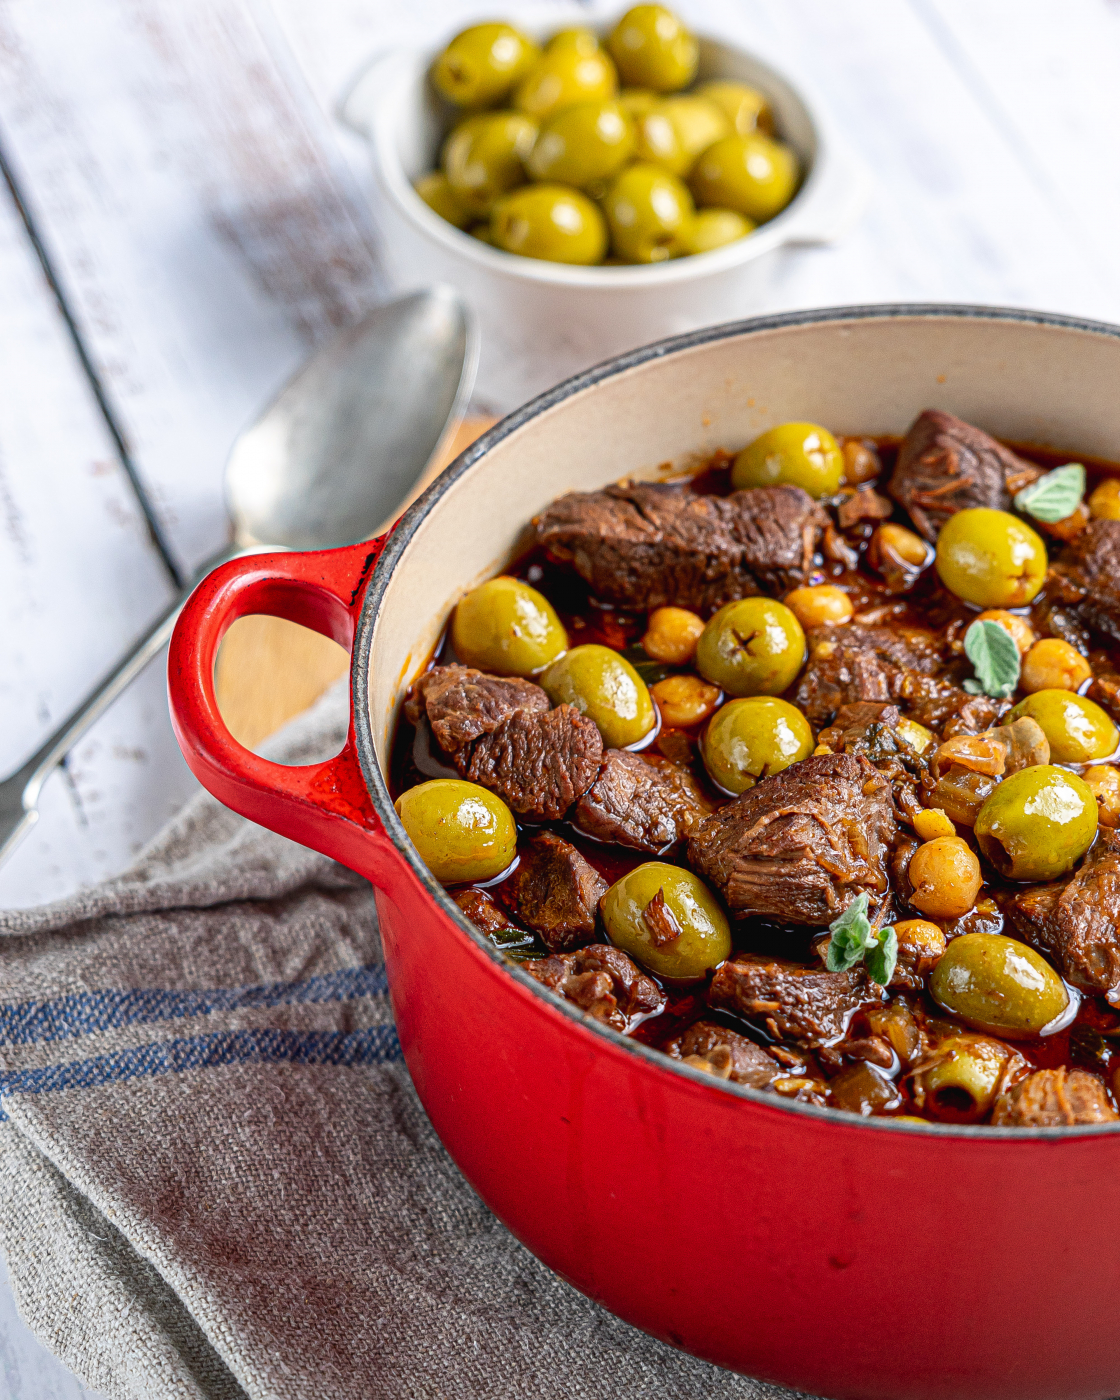 Rioja braised beef and olives with chickpeas by José Pizarro